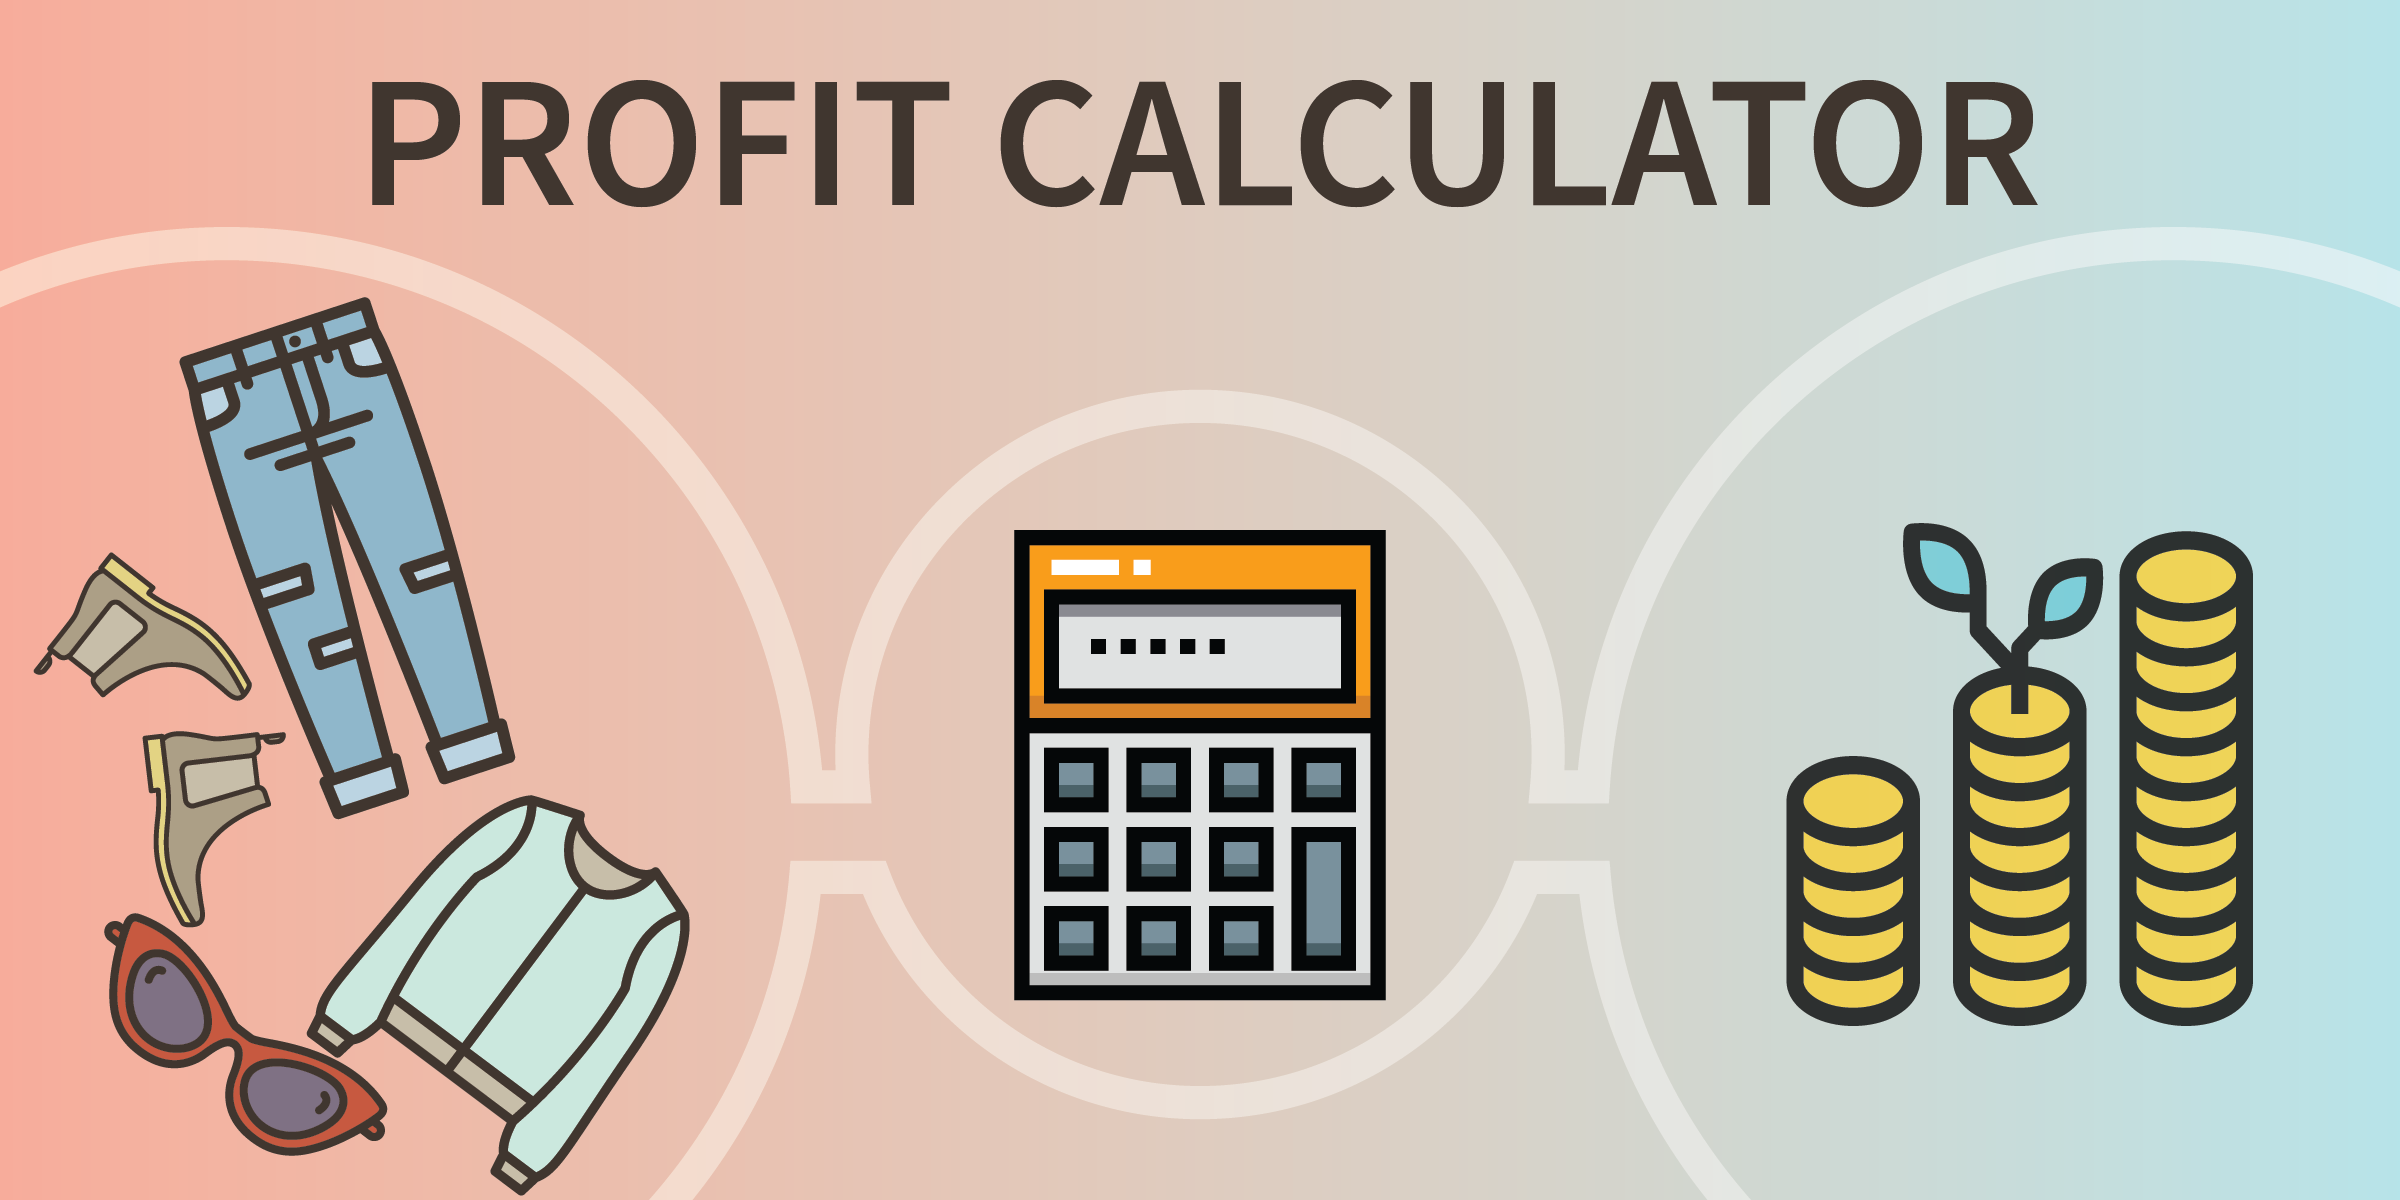 Profit calculator 01